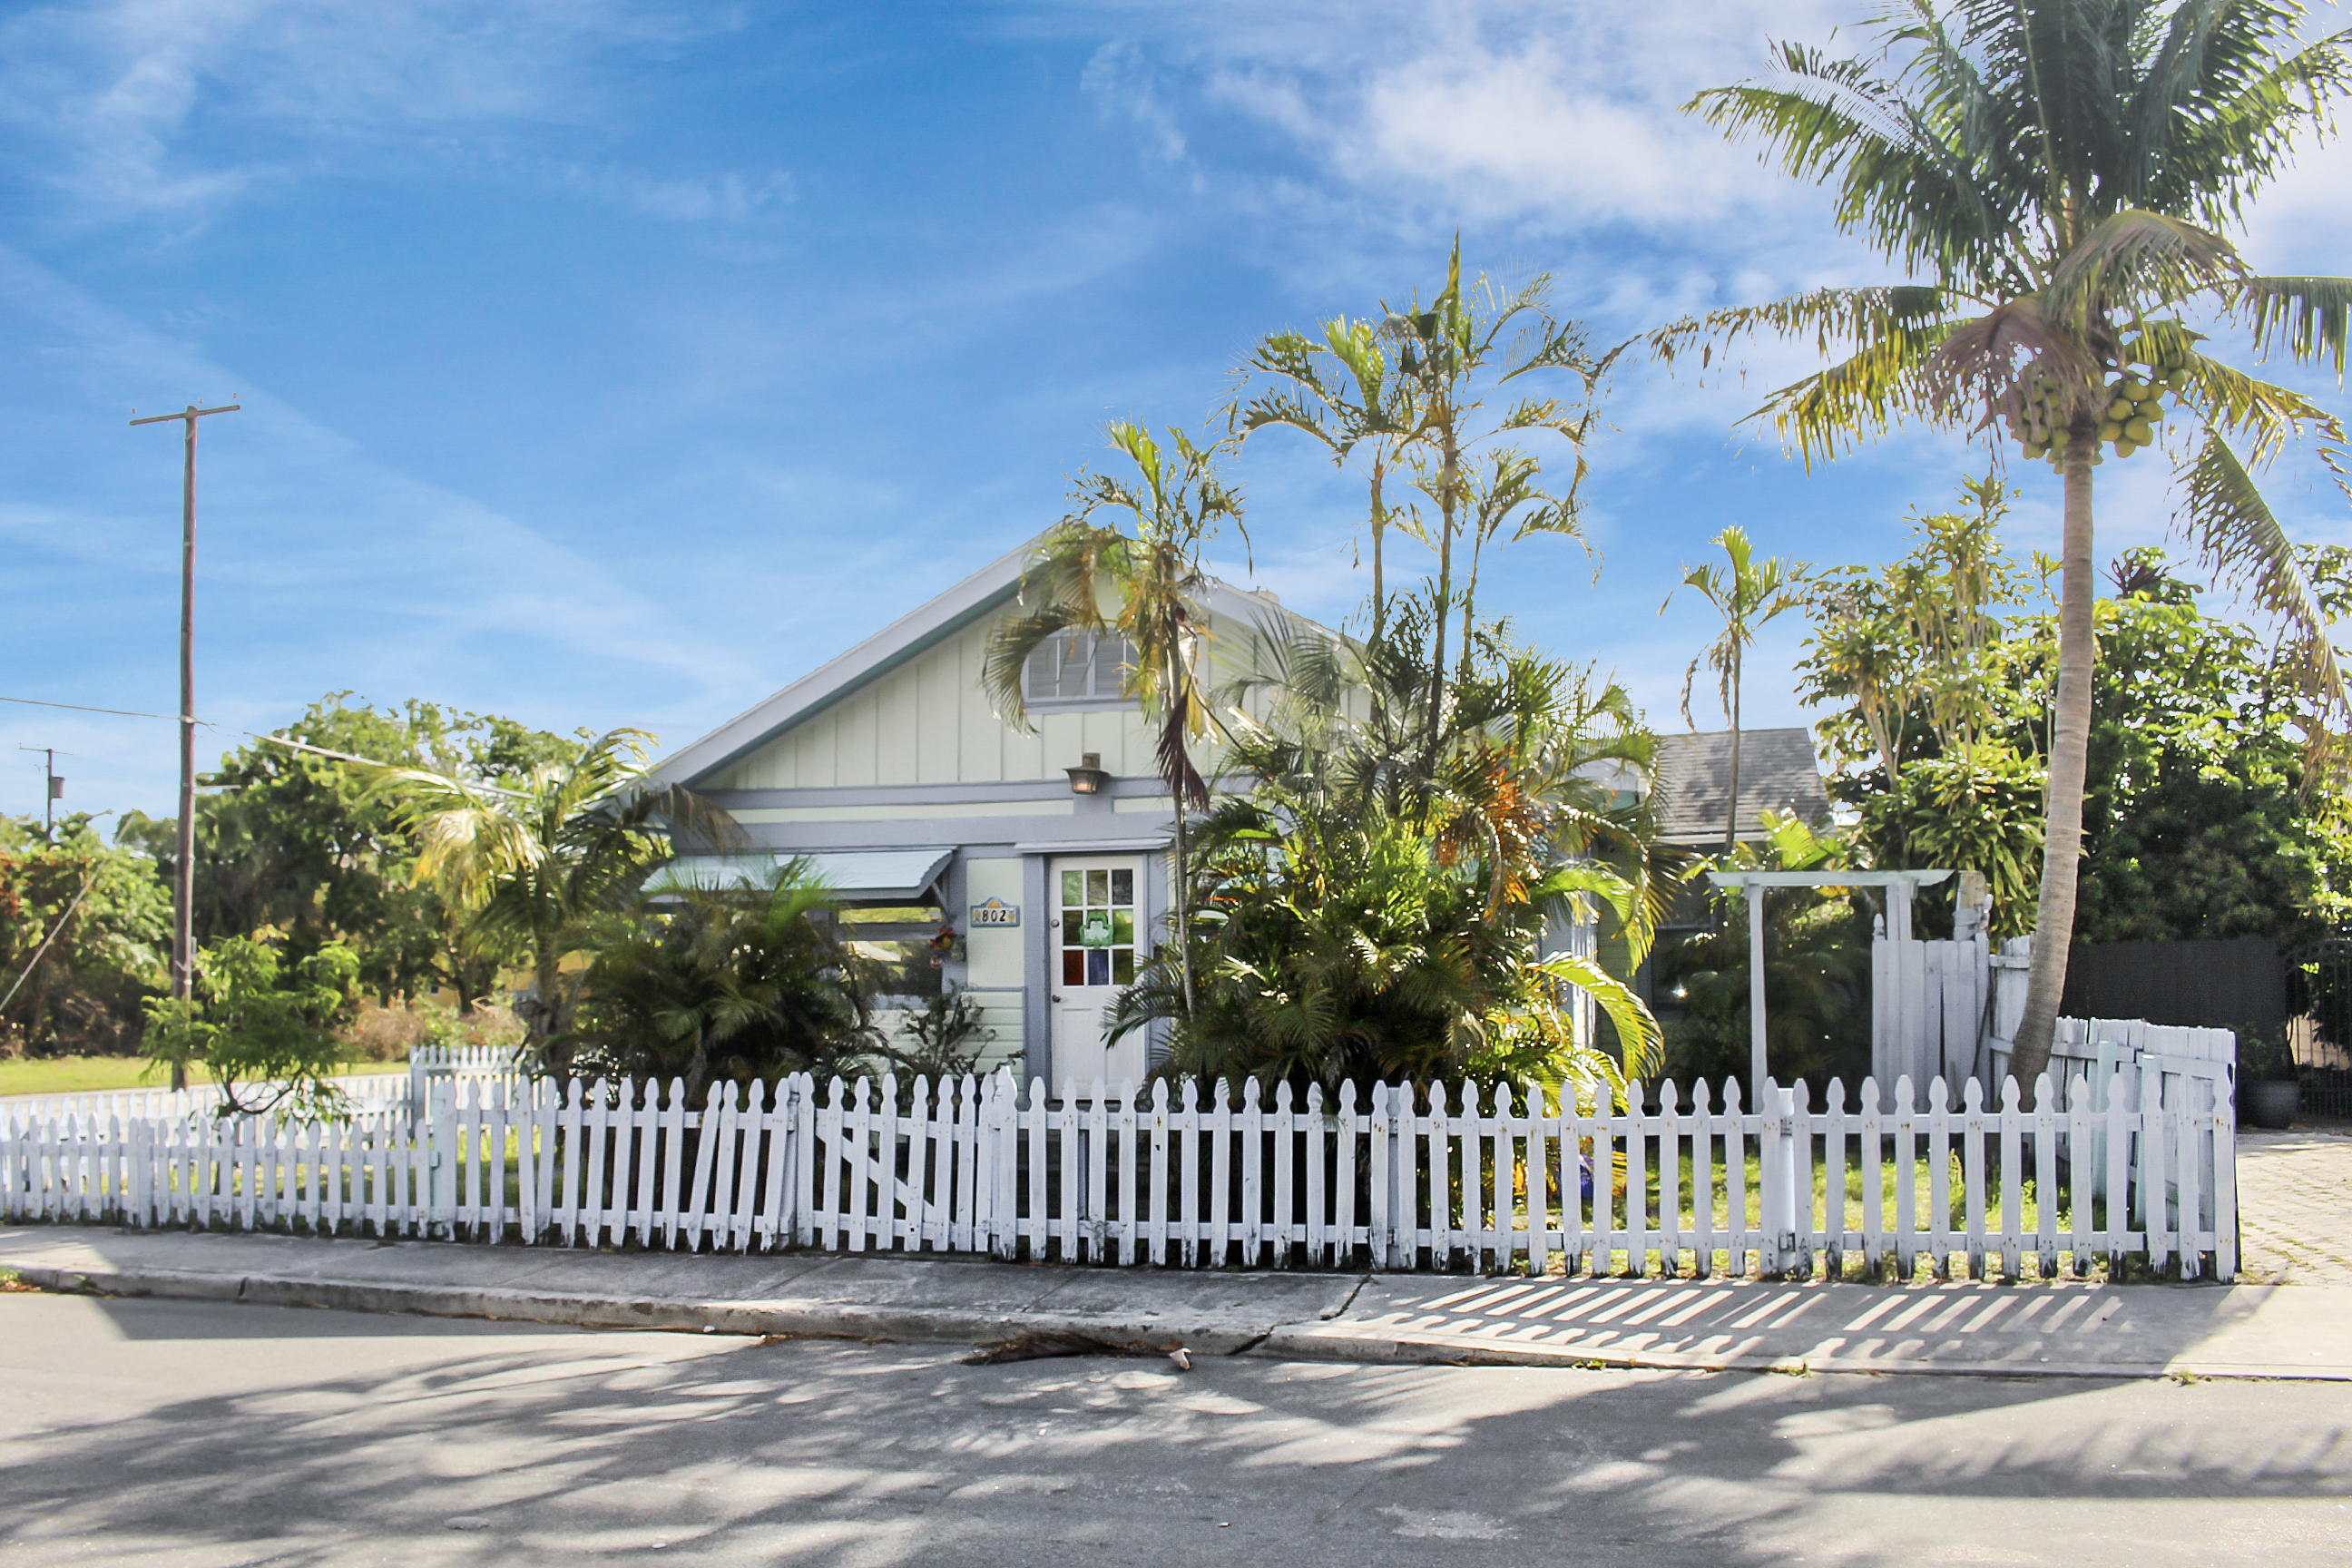 802 S N St Lake Worth Beach, FL 33460 Top Lake Worth Agents Sold And Found The Buyer In Lake Worth Town